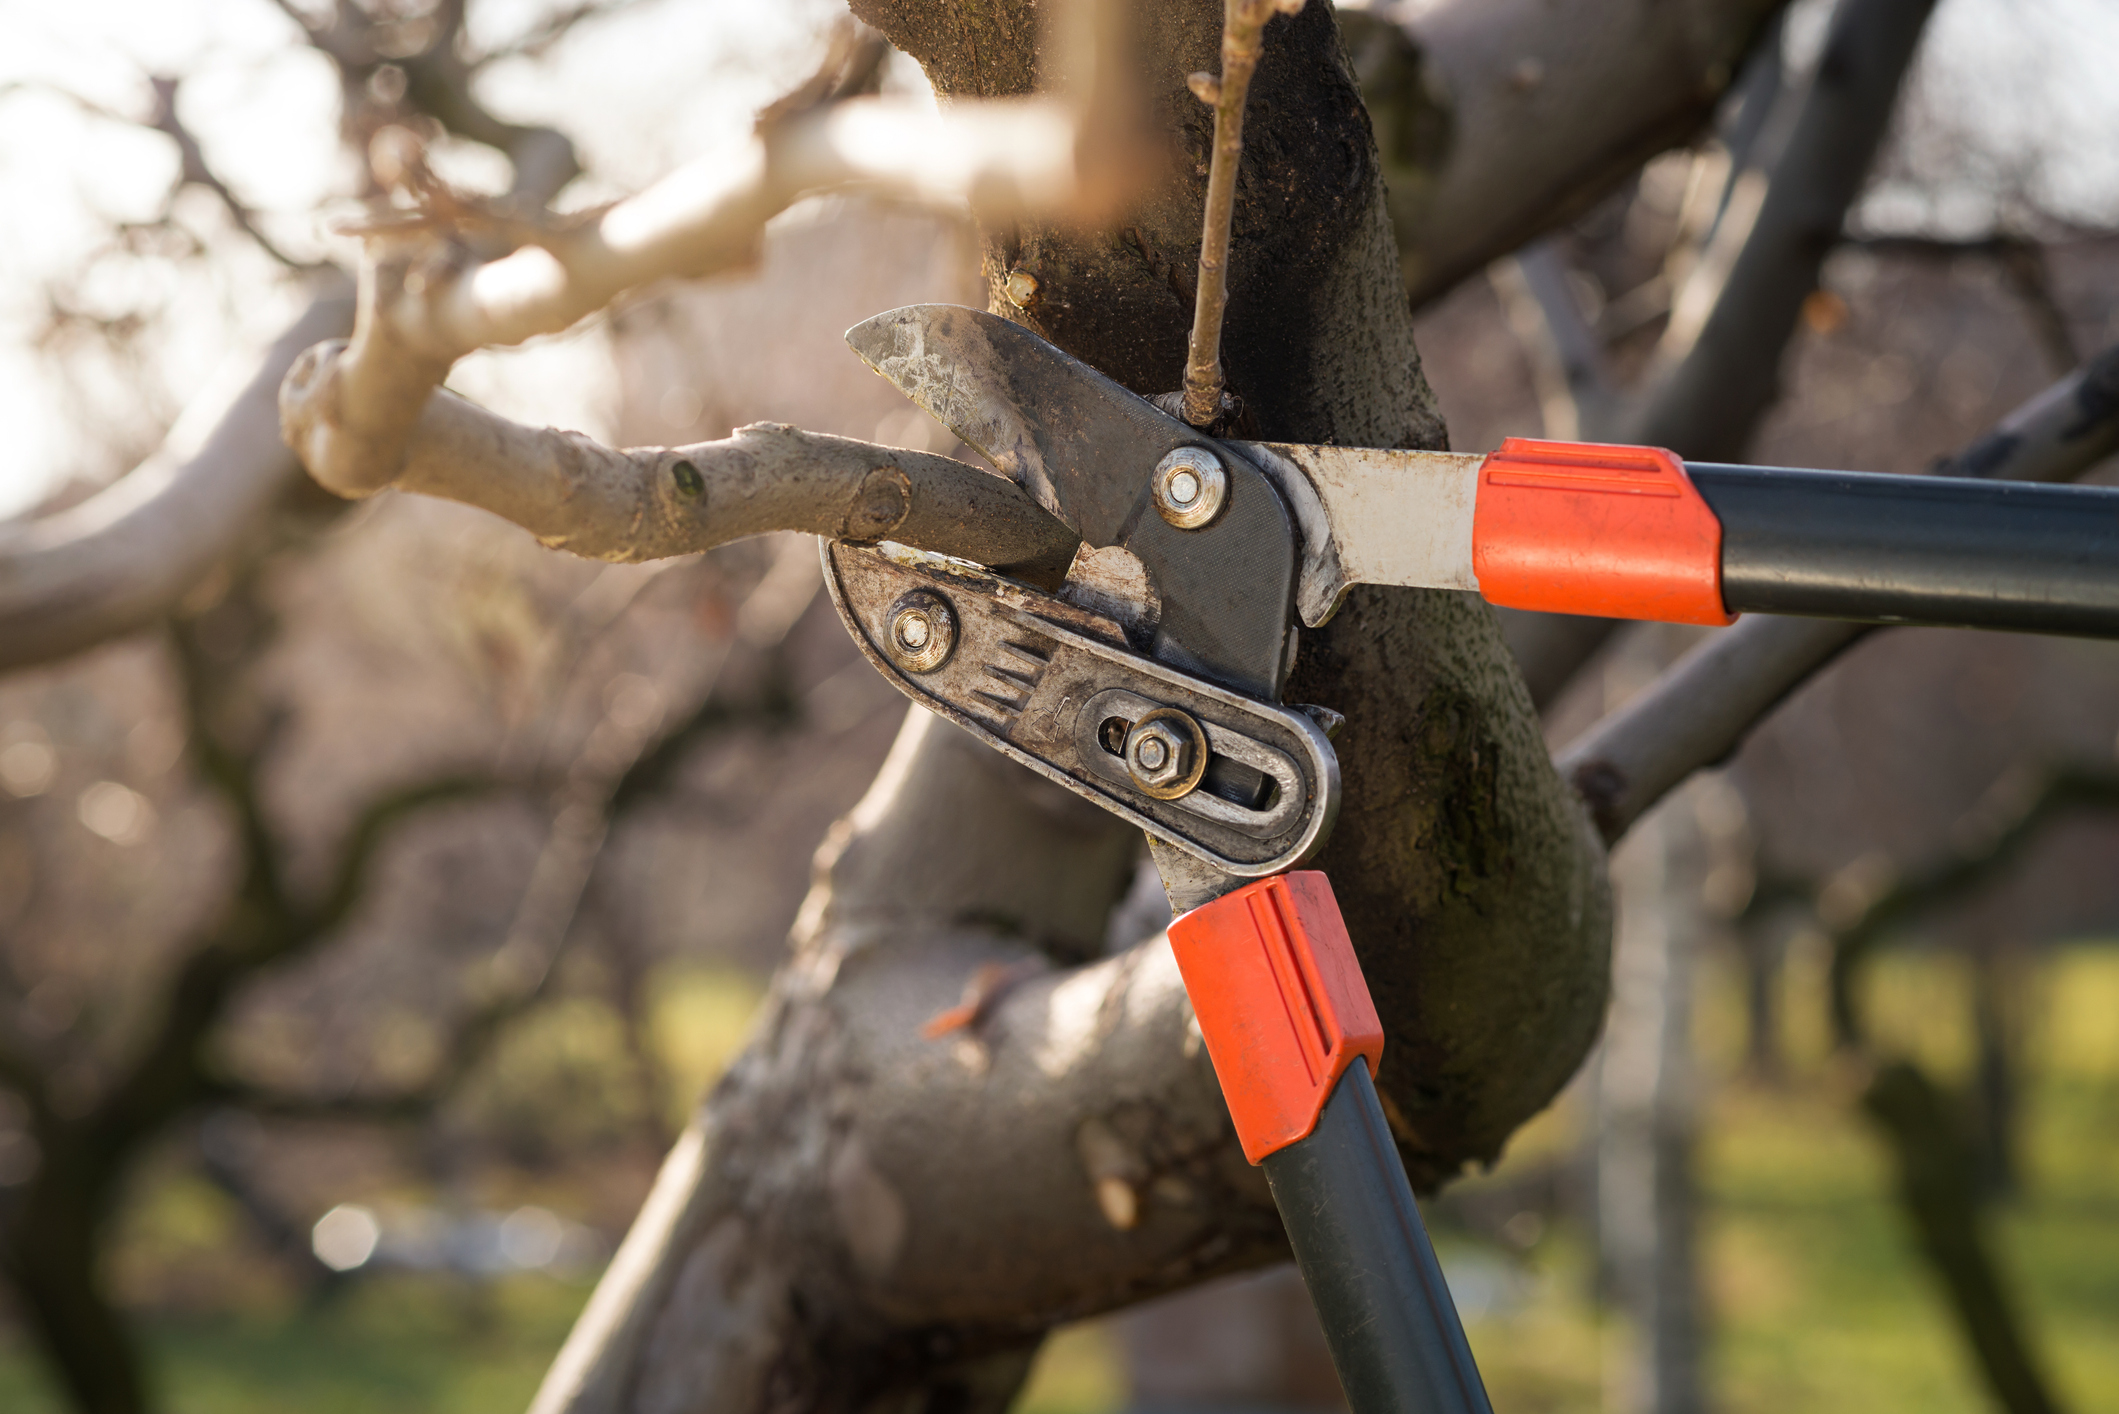 Tree Pruning with Shears